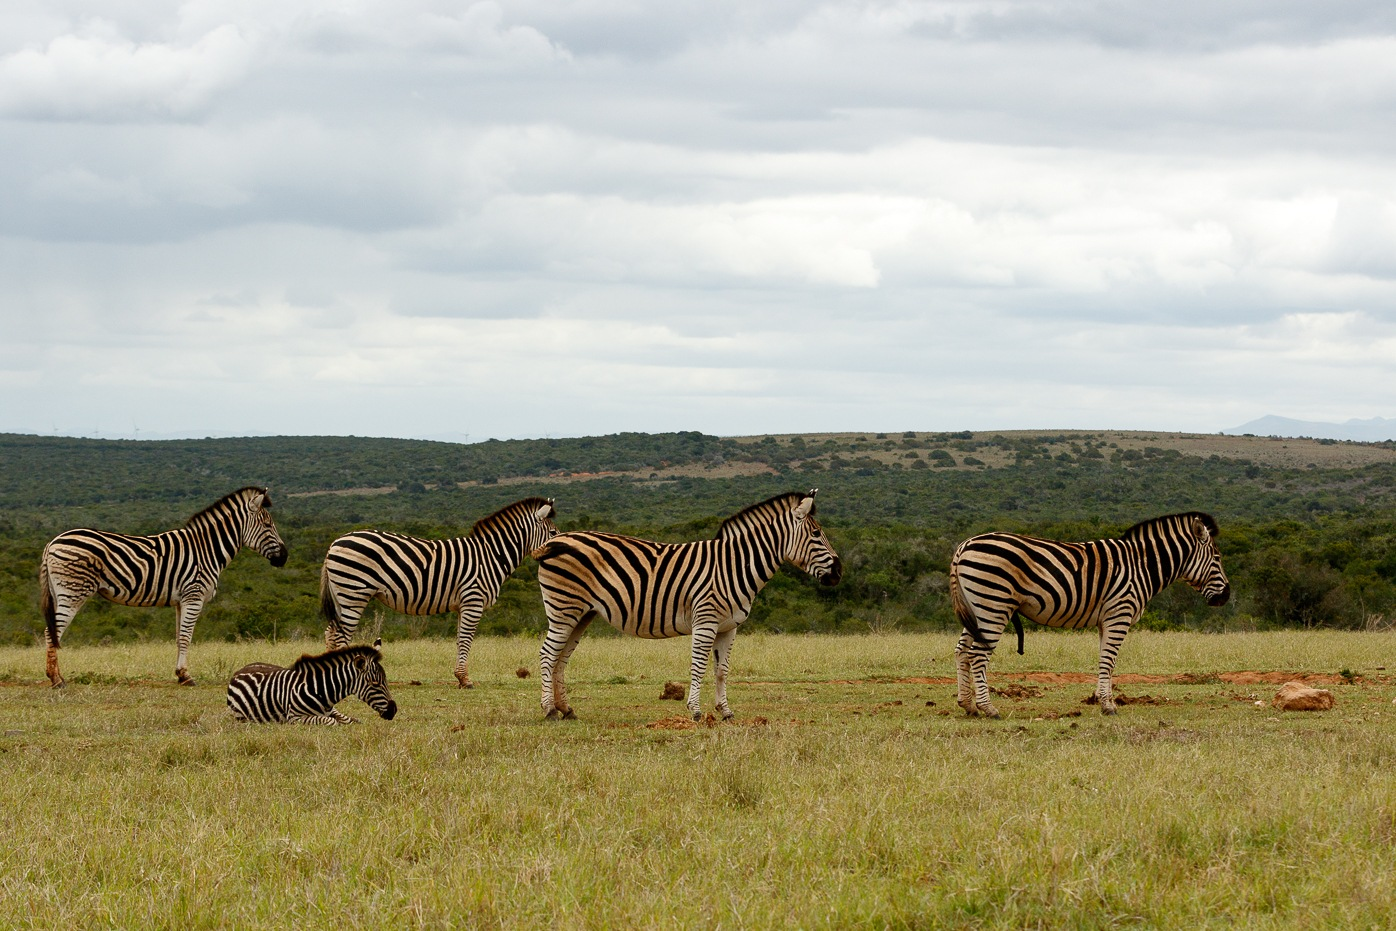 Zebras standing in a row waiting for some water by Mark de Scande